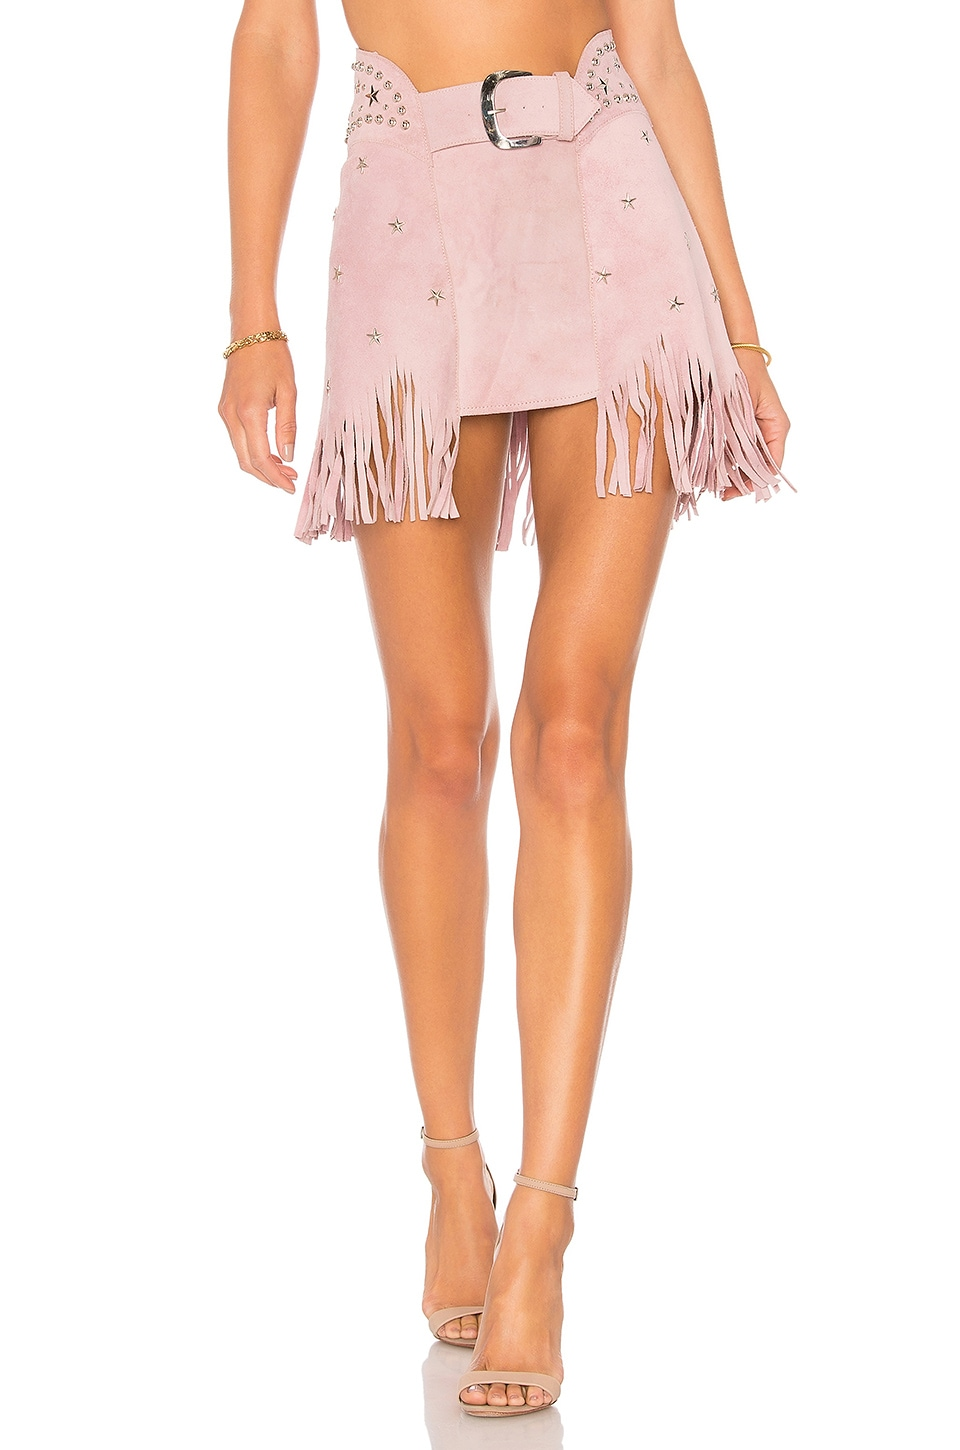 Understated Leather x REVOLVE Paris Texas Skirt in Lilac